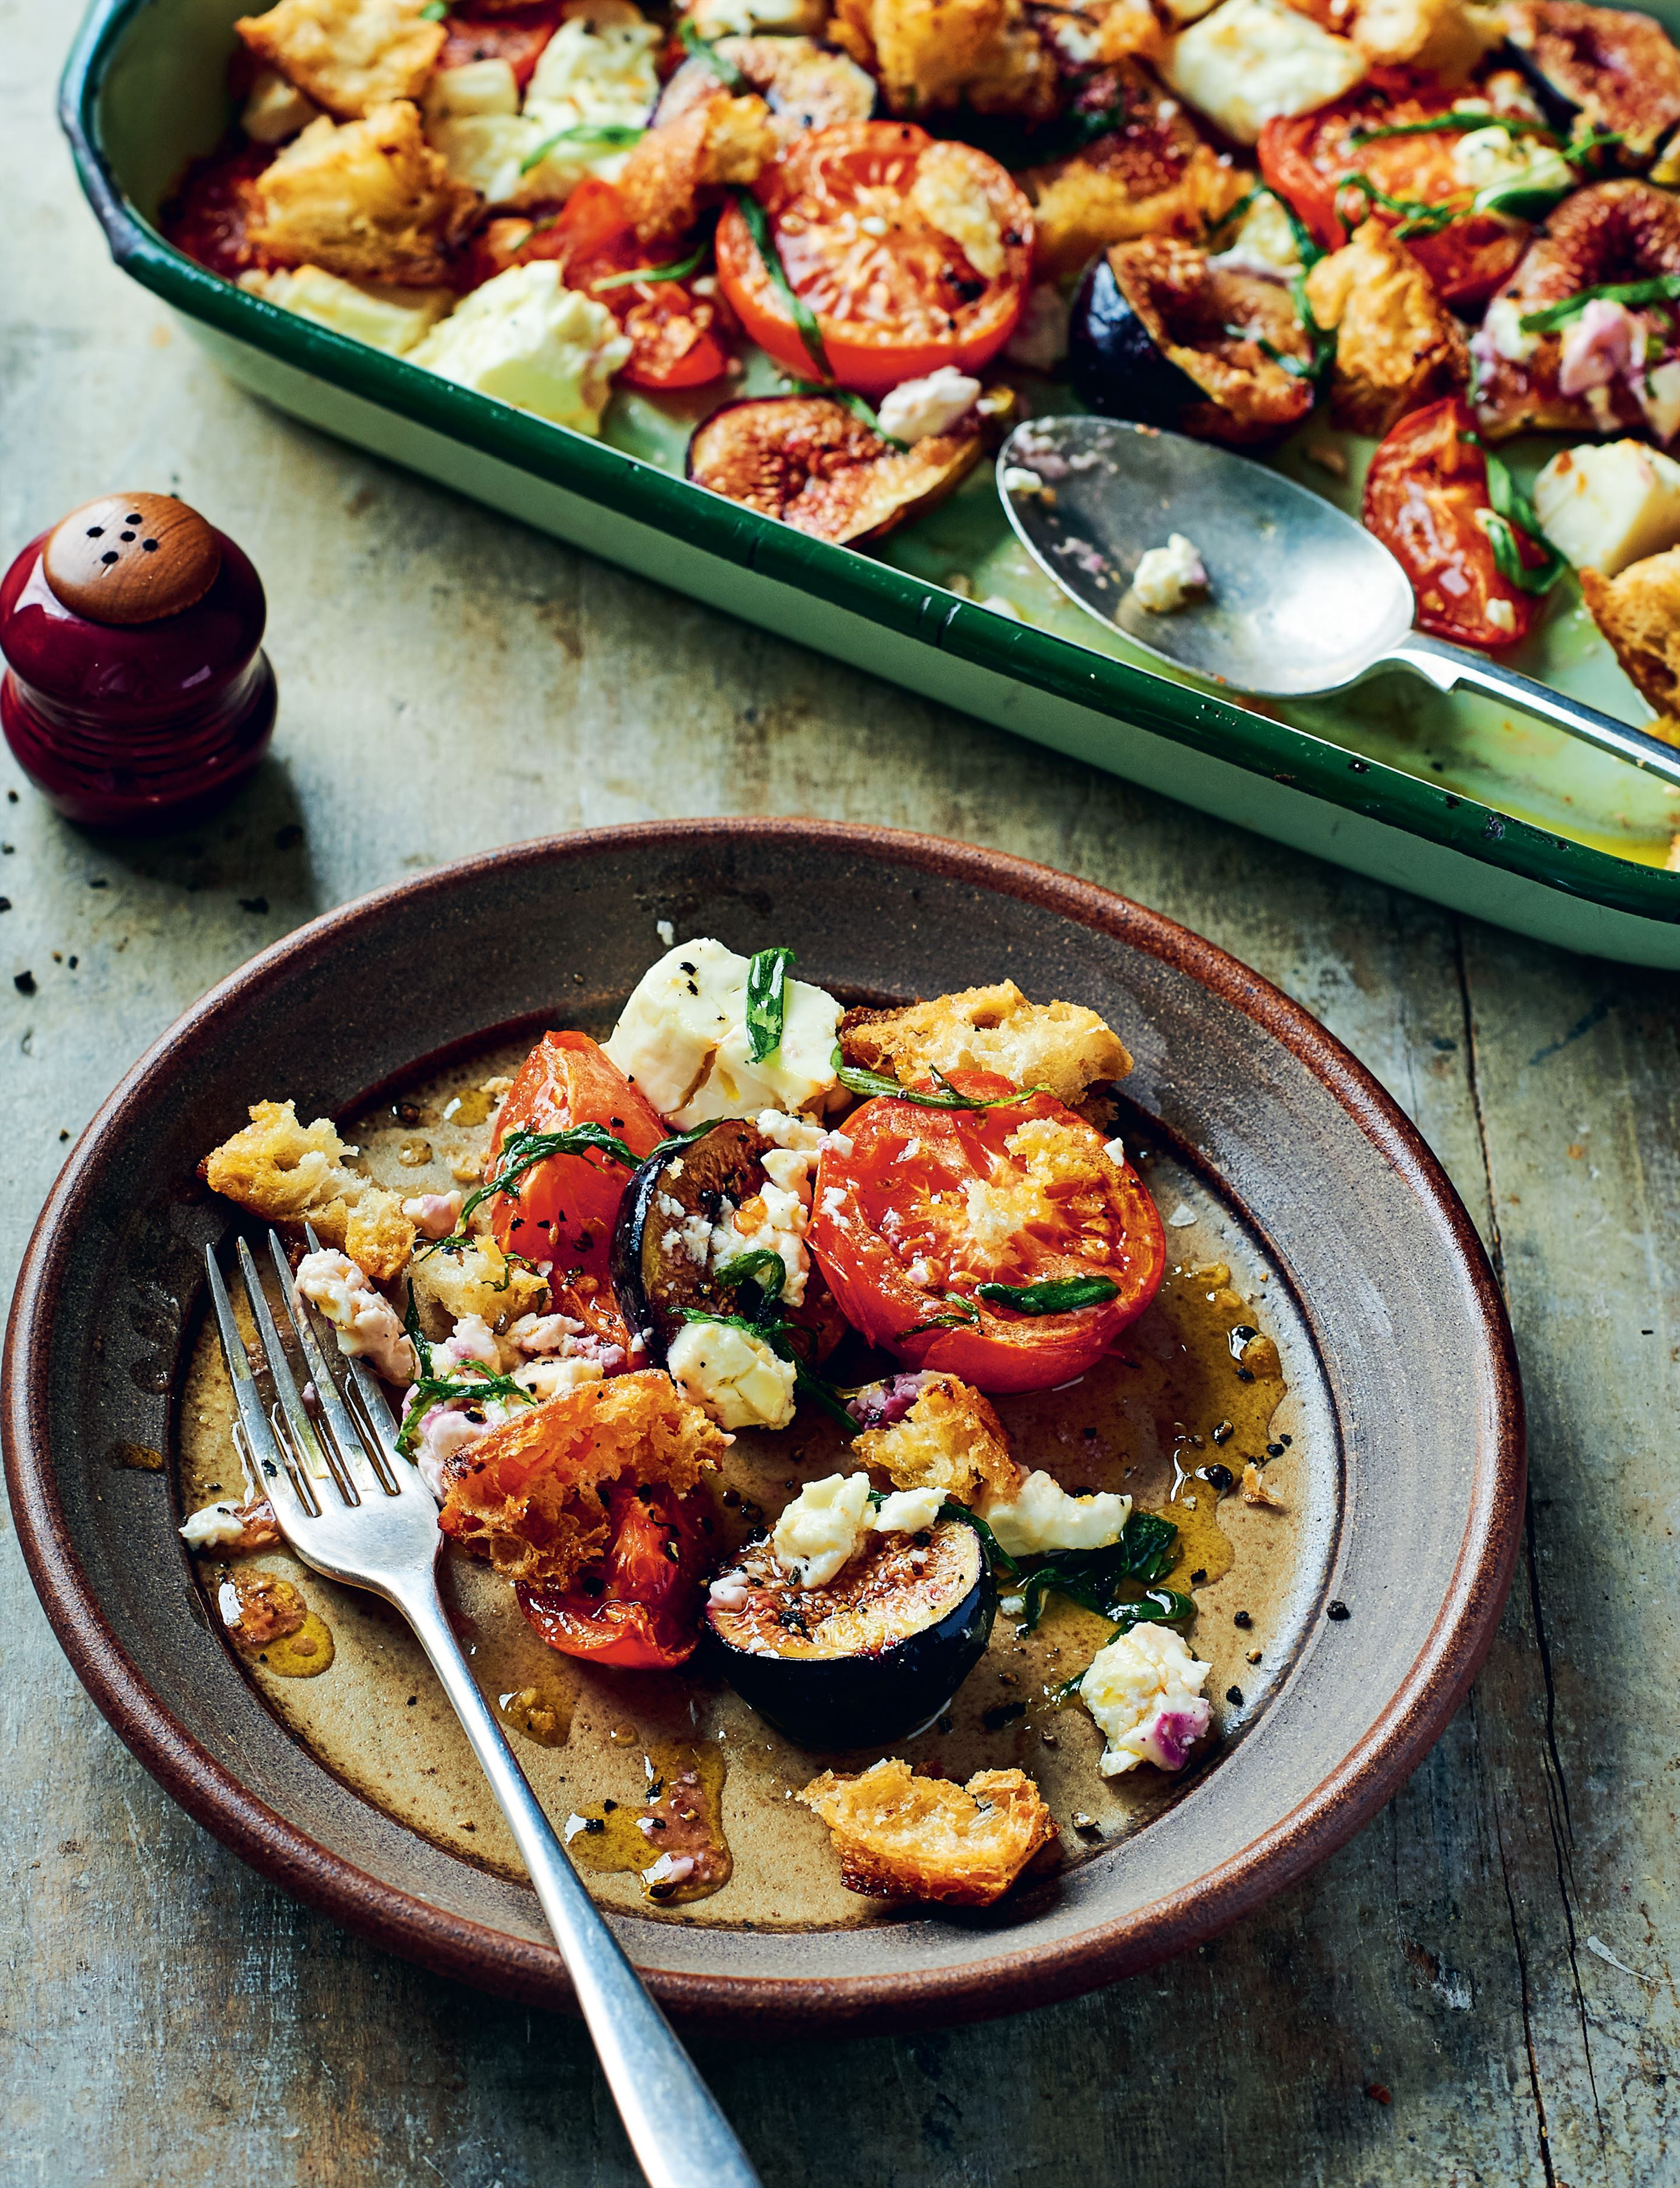 Warm salad of roast tomatoes, figs and feta with tarragon